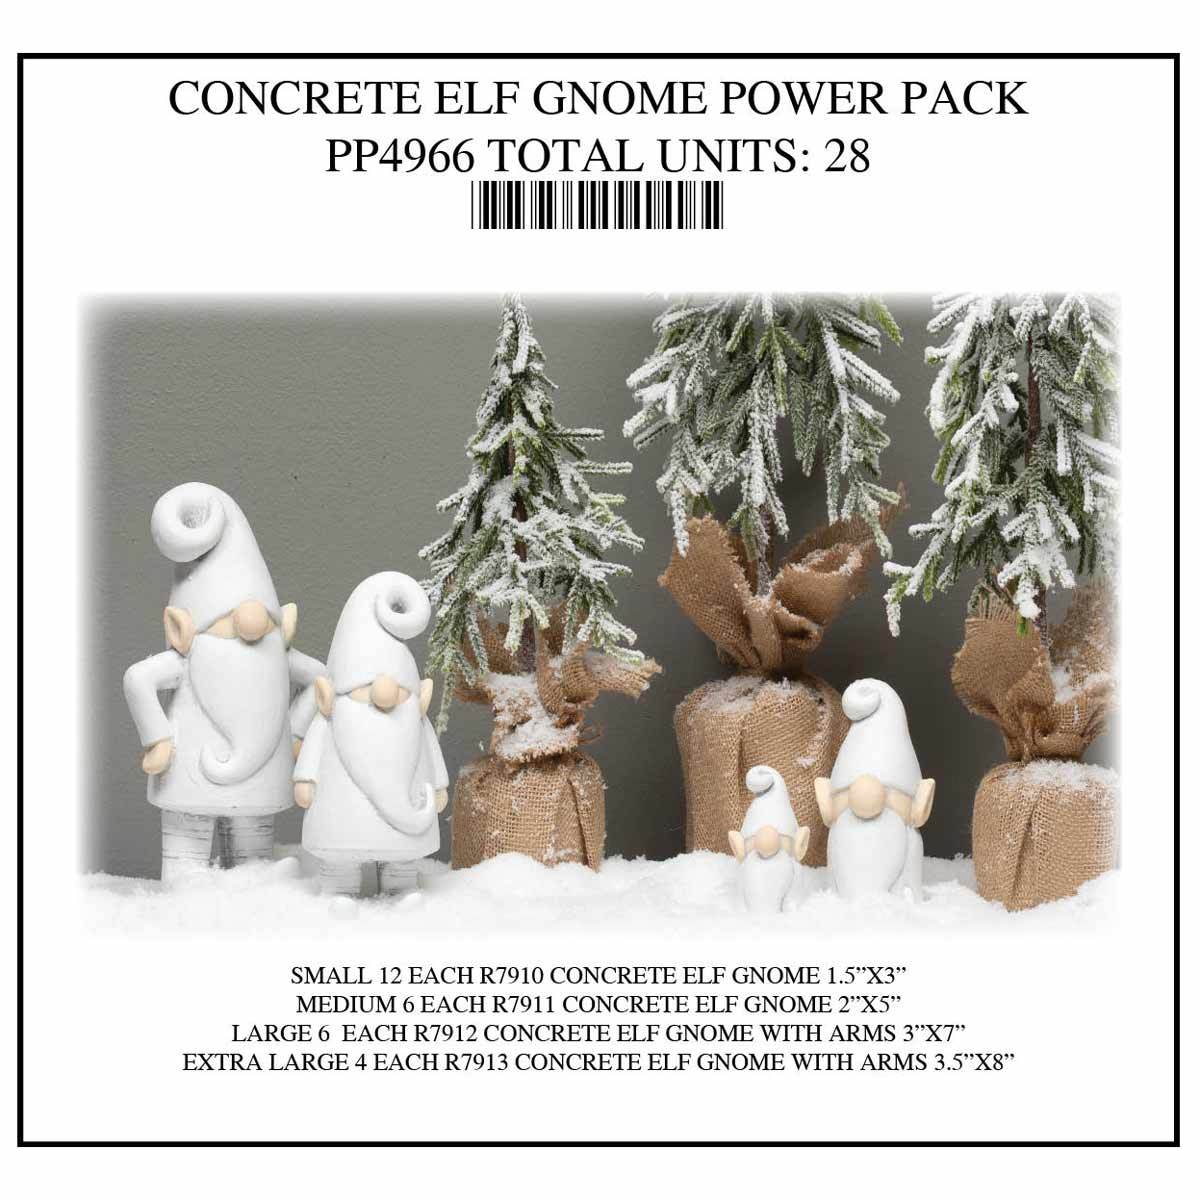 GNOME ELF POWER PACK 28 UNITS PP4966